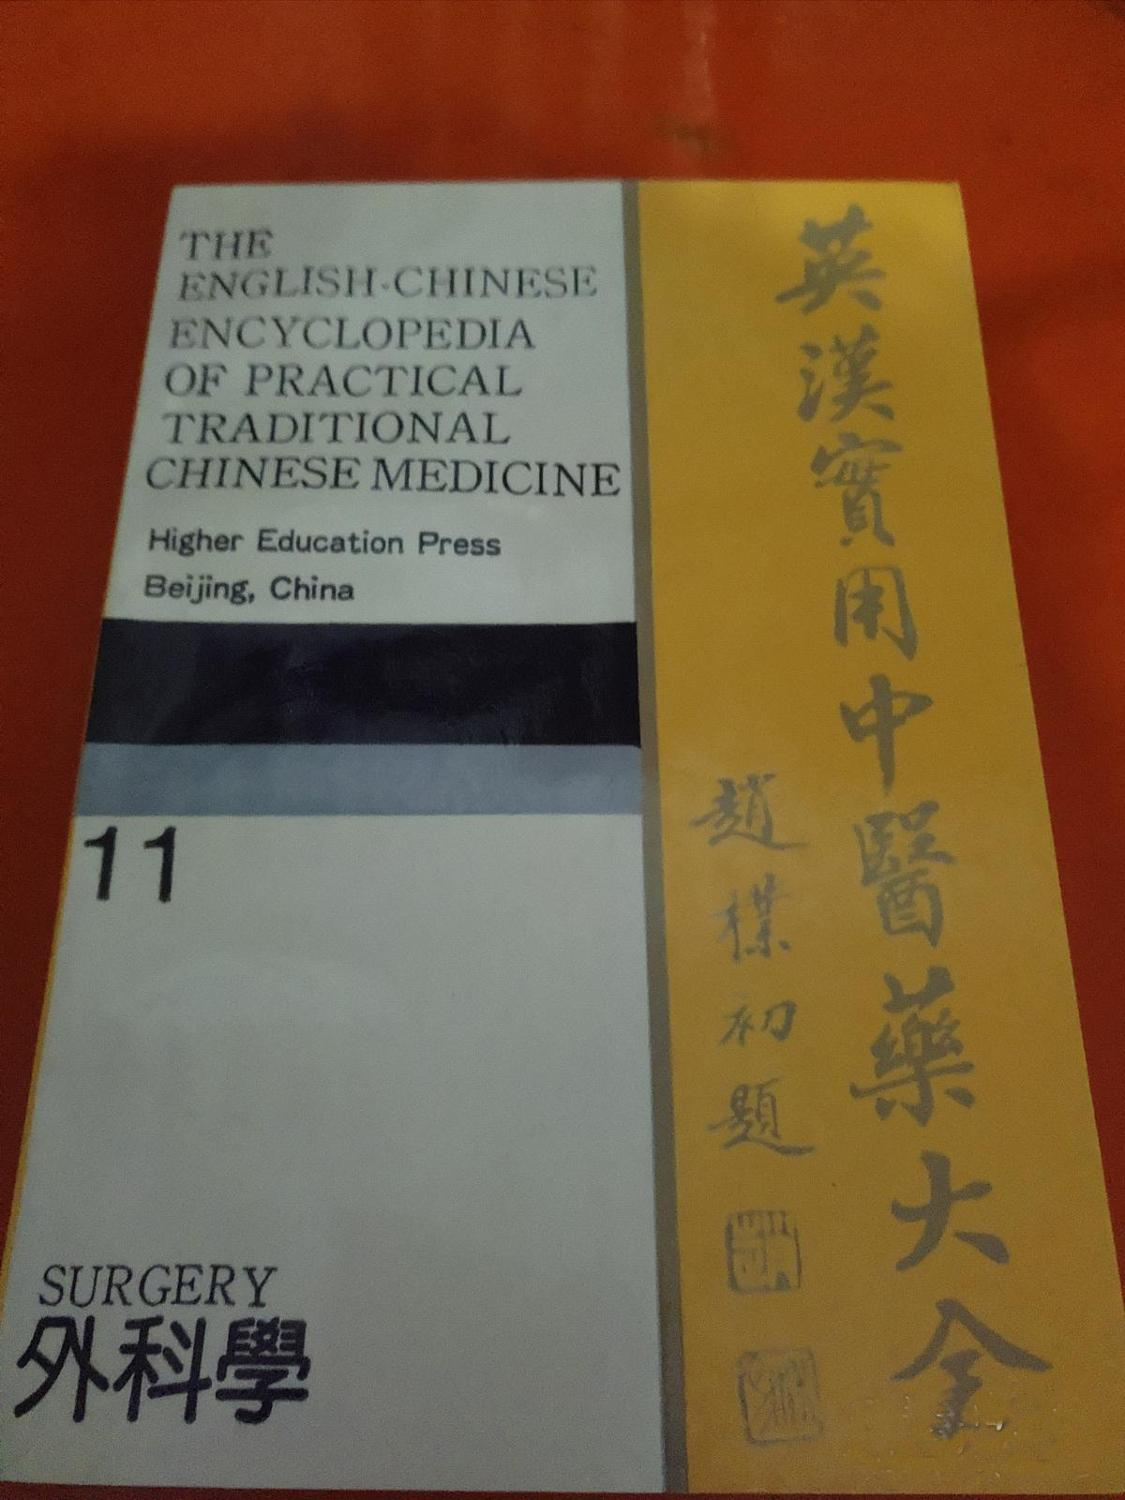 Used Bilingual Chinese & English Encyclopaedia Series Book 11 Surgery Medical Textbook